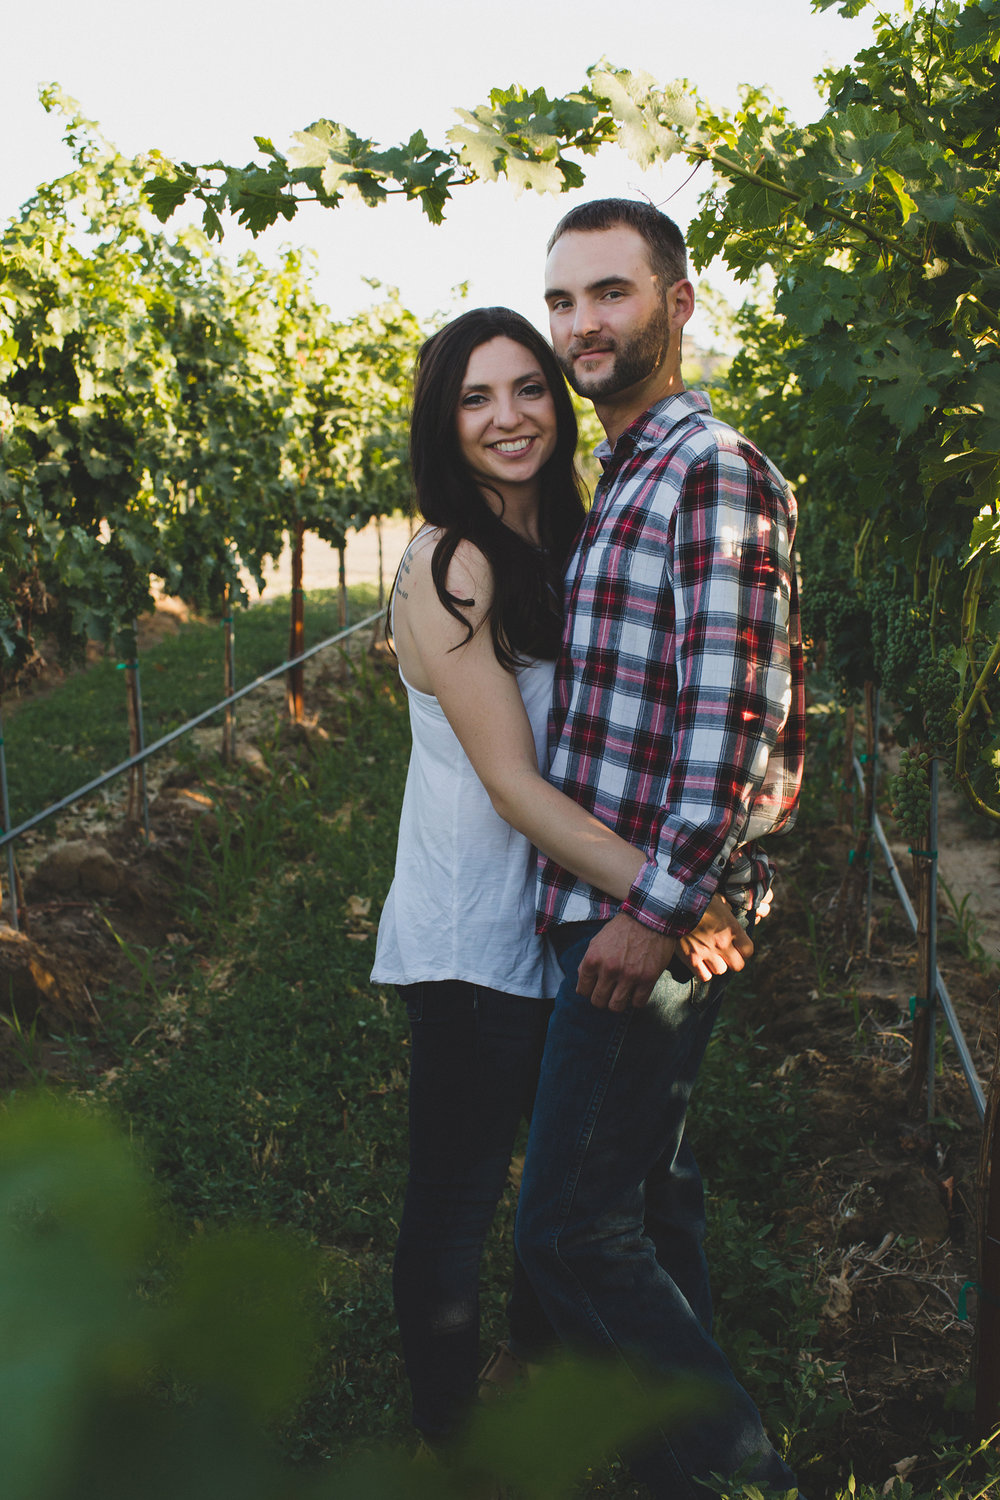 Tri Cities sunset engagement session_desert engagement_Vineyard engagement_Jordyn and Drew_Jordan Edens Photography_JEP_Grape vines_12